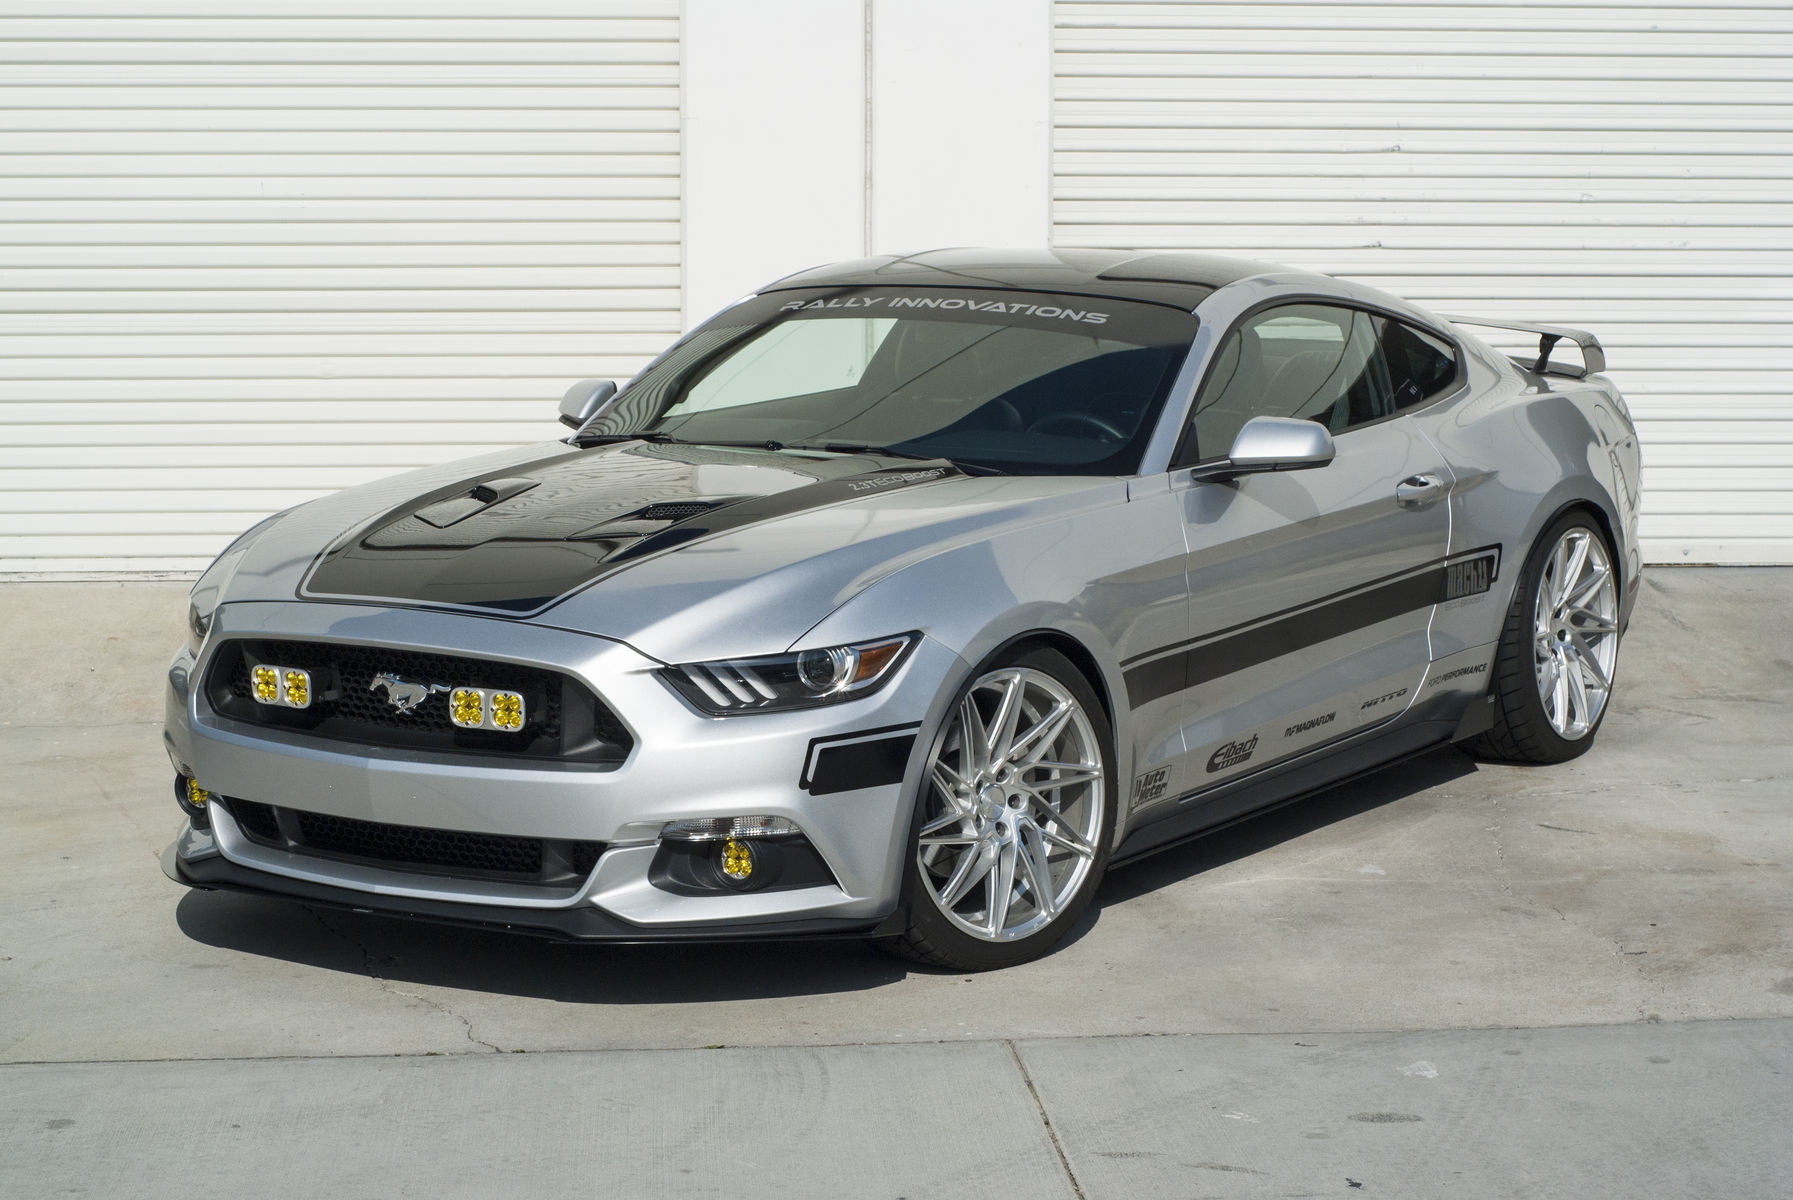 Ford Mustang | Front Shot with Light Conversion and Splitters